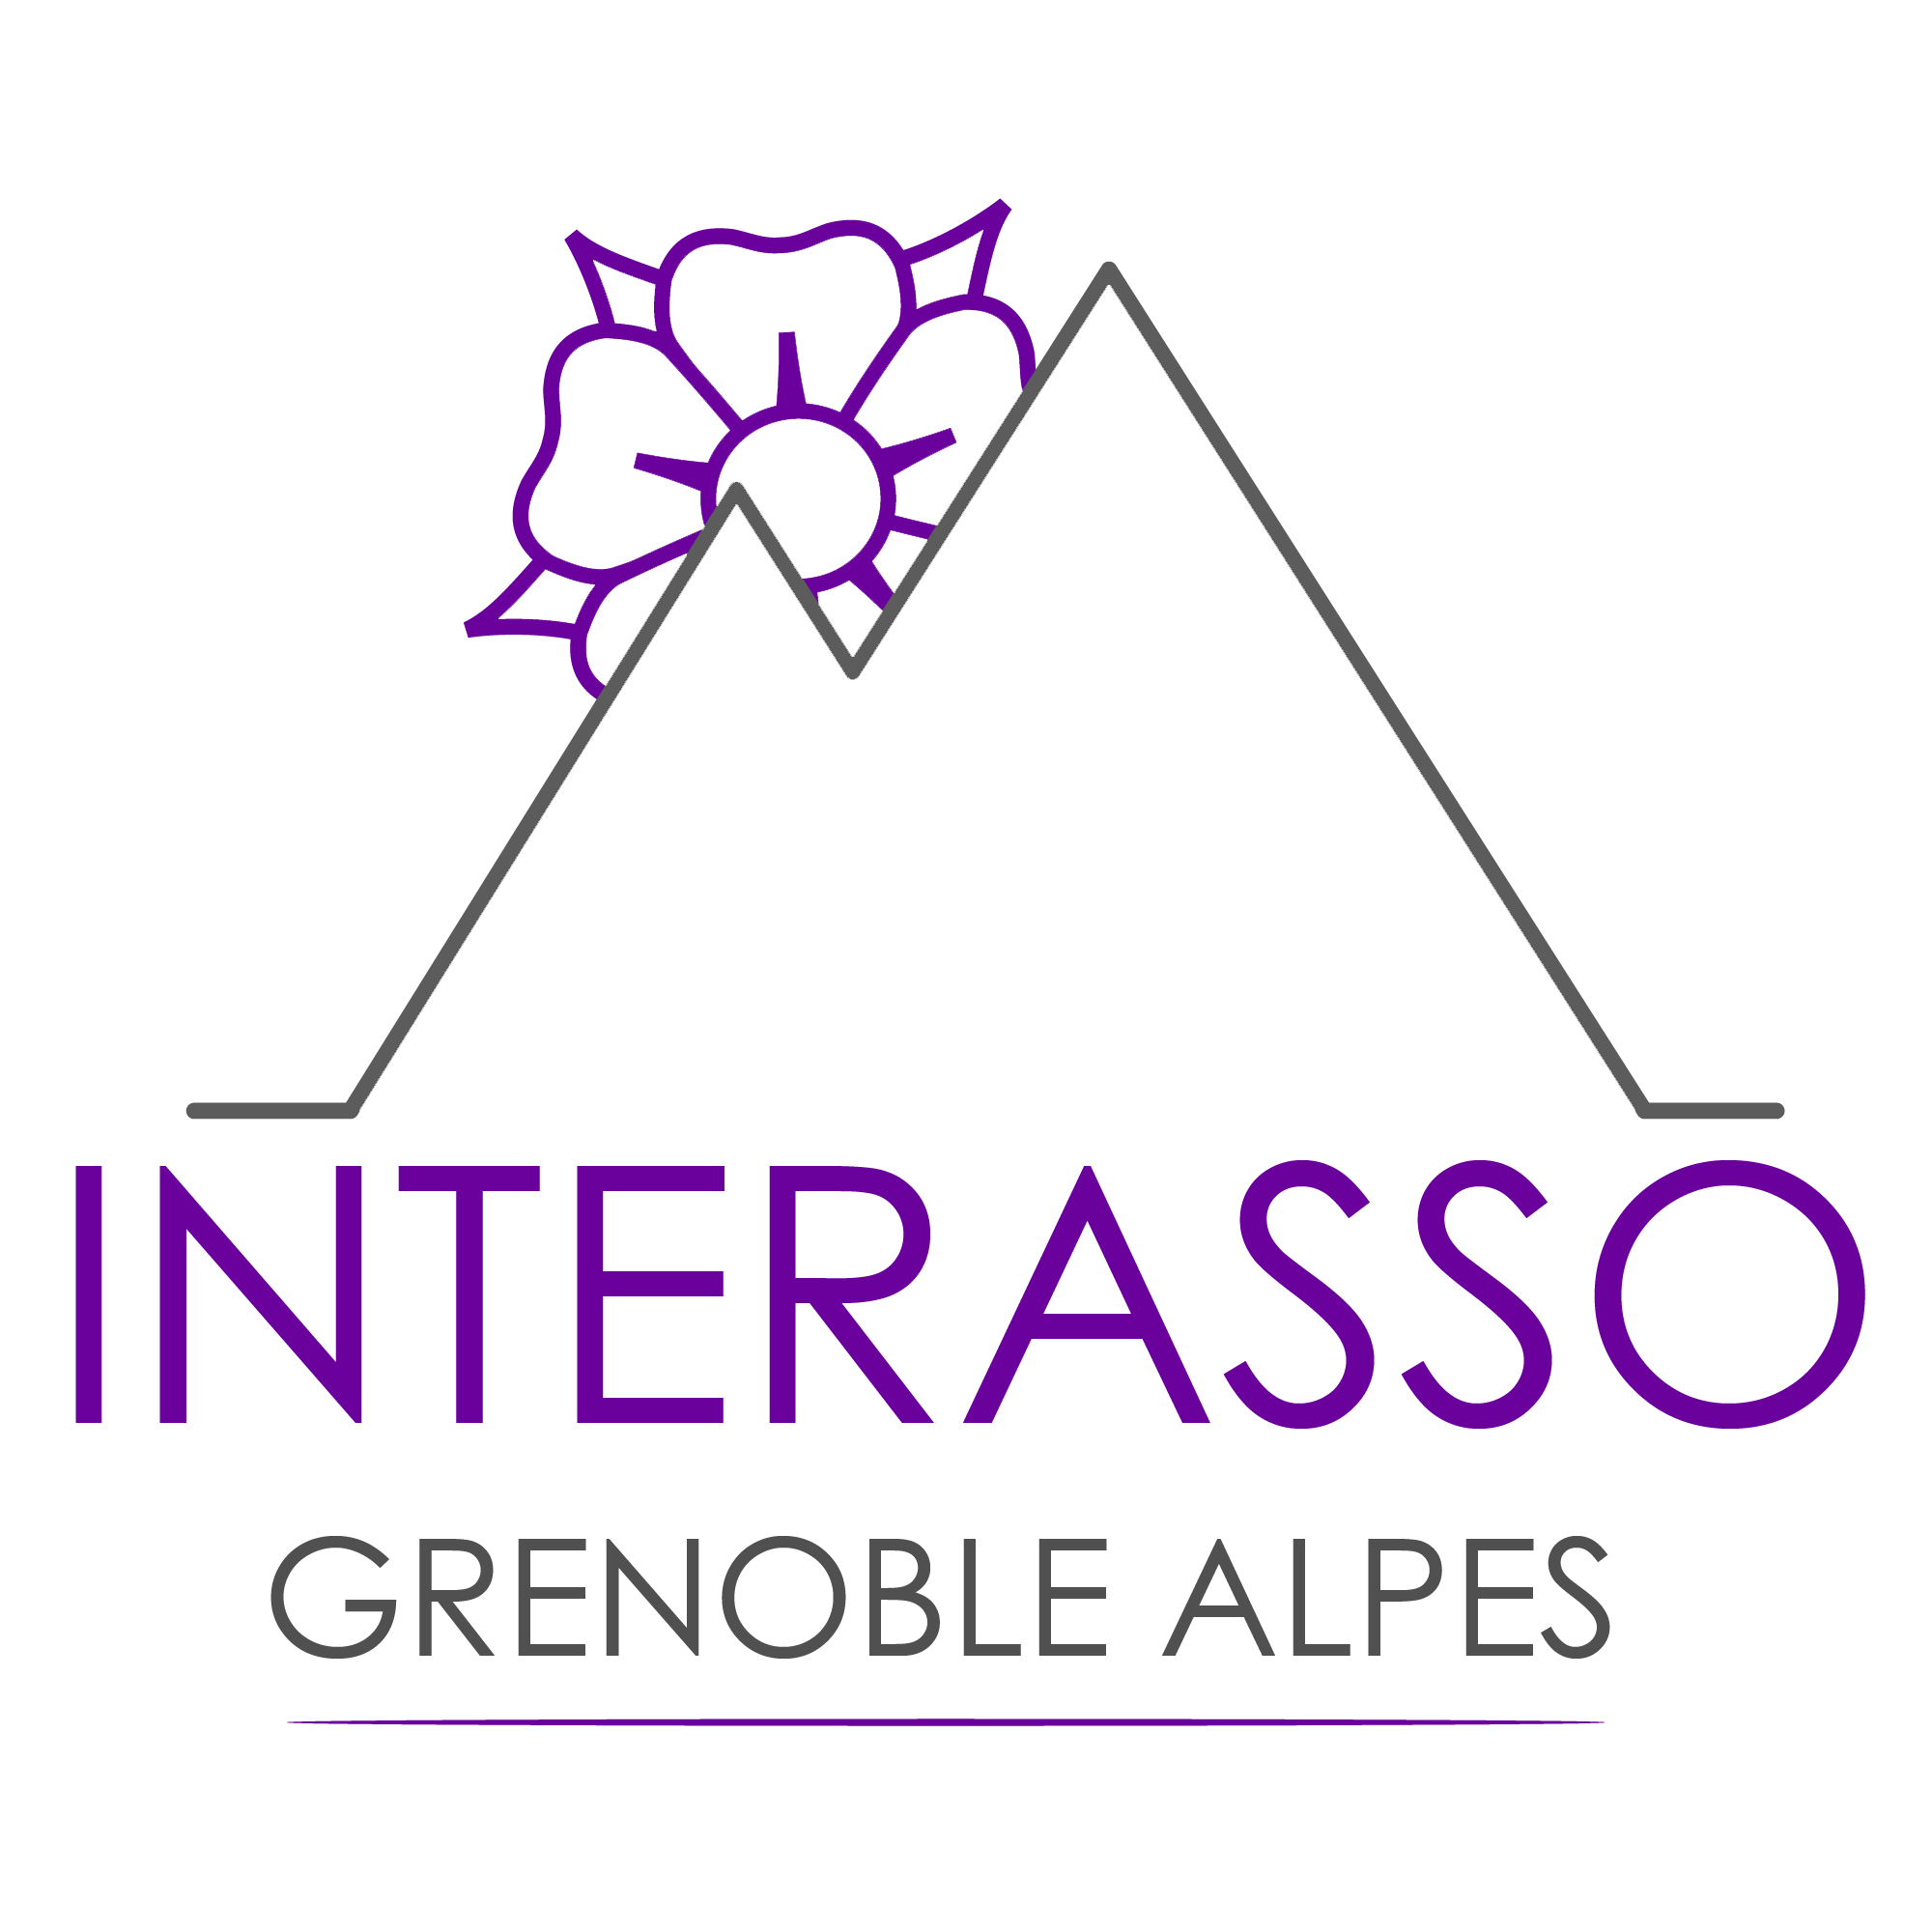 InterAsso Grenoble Alpes